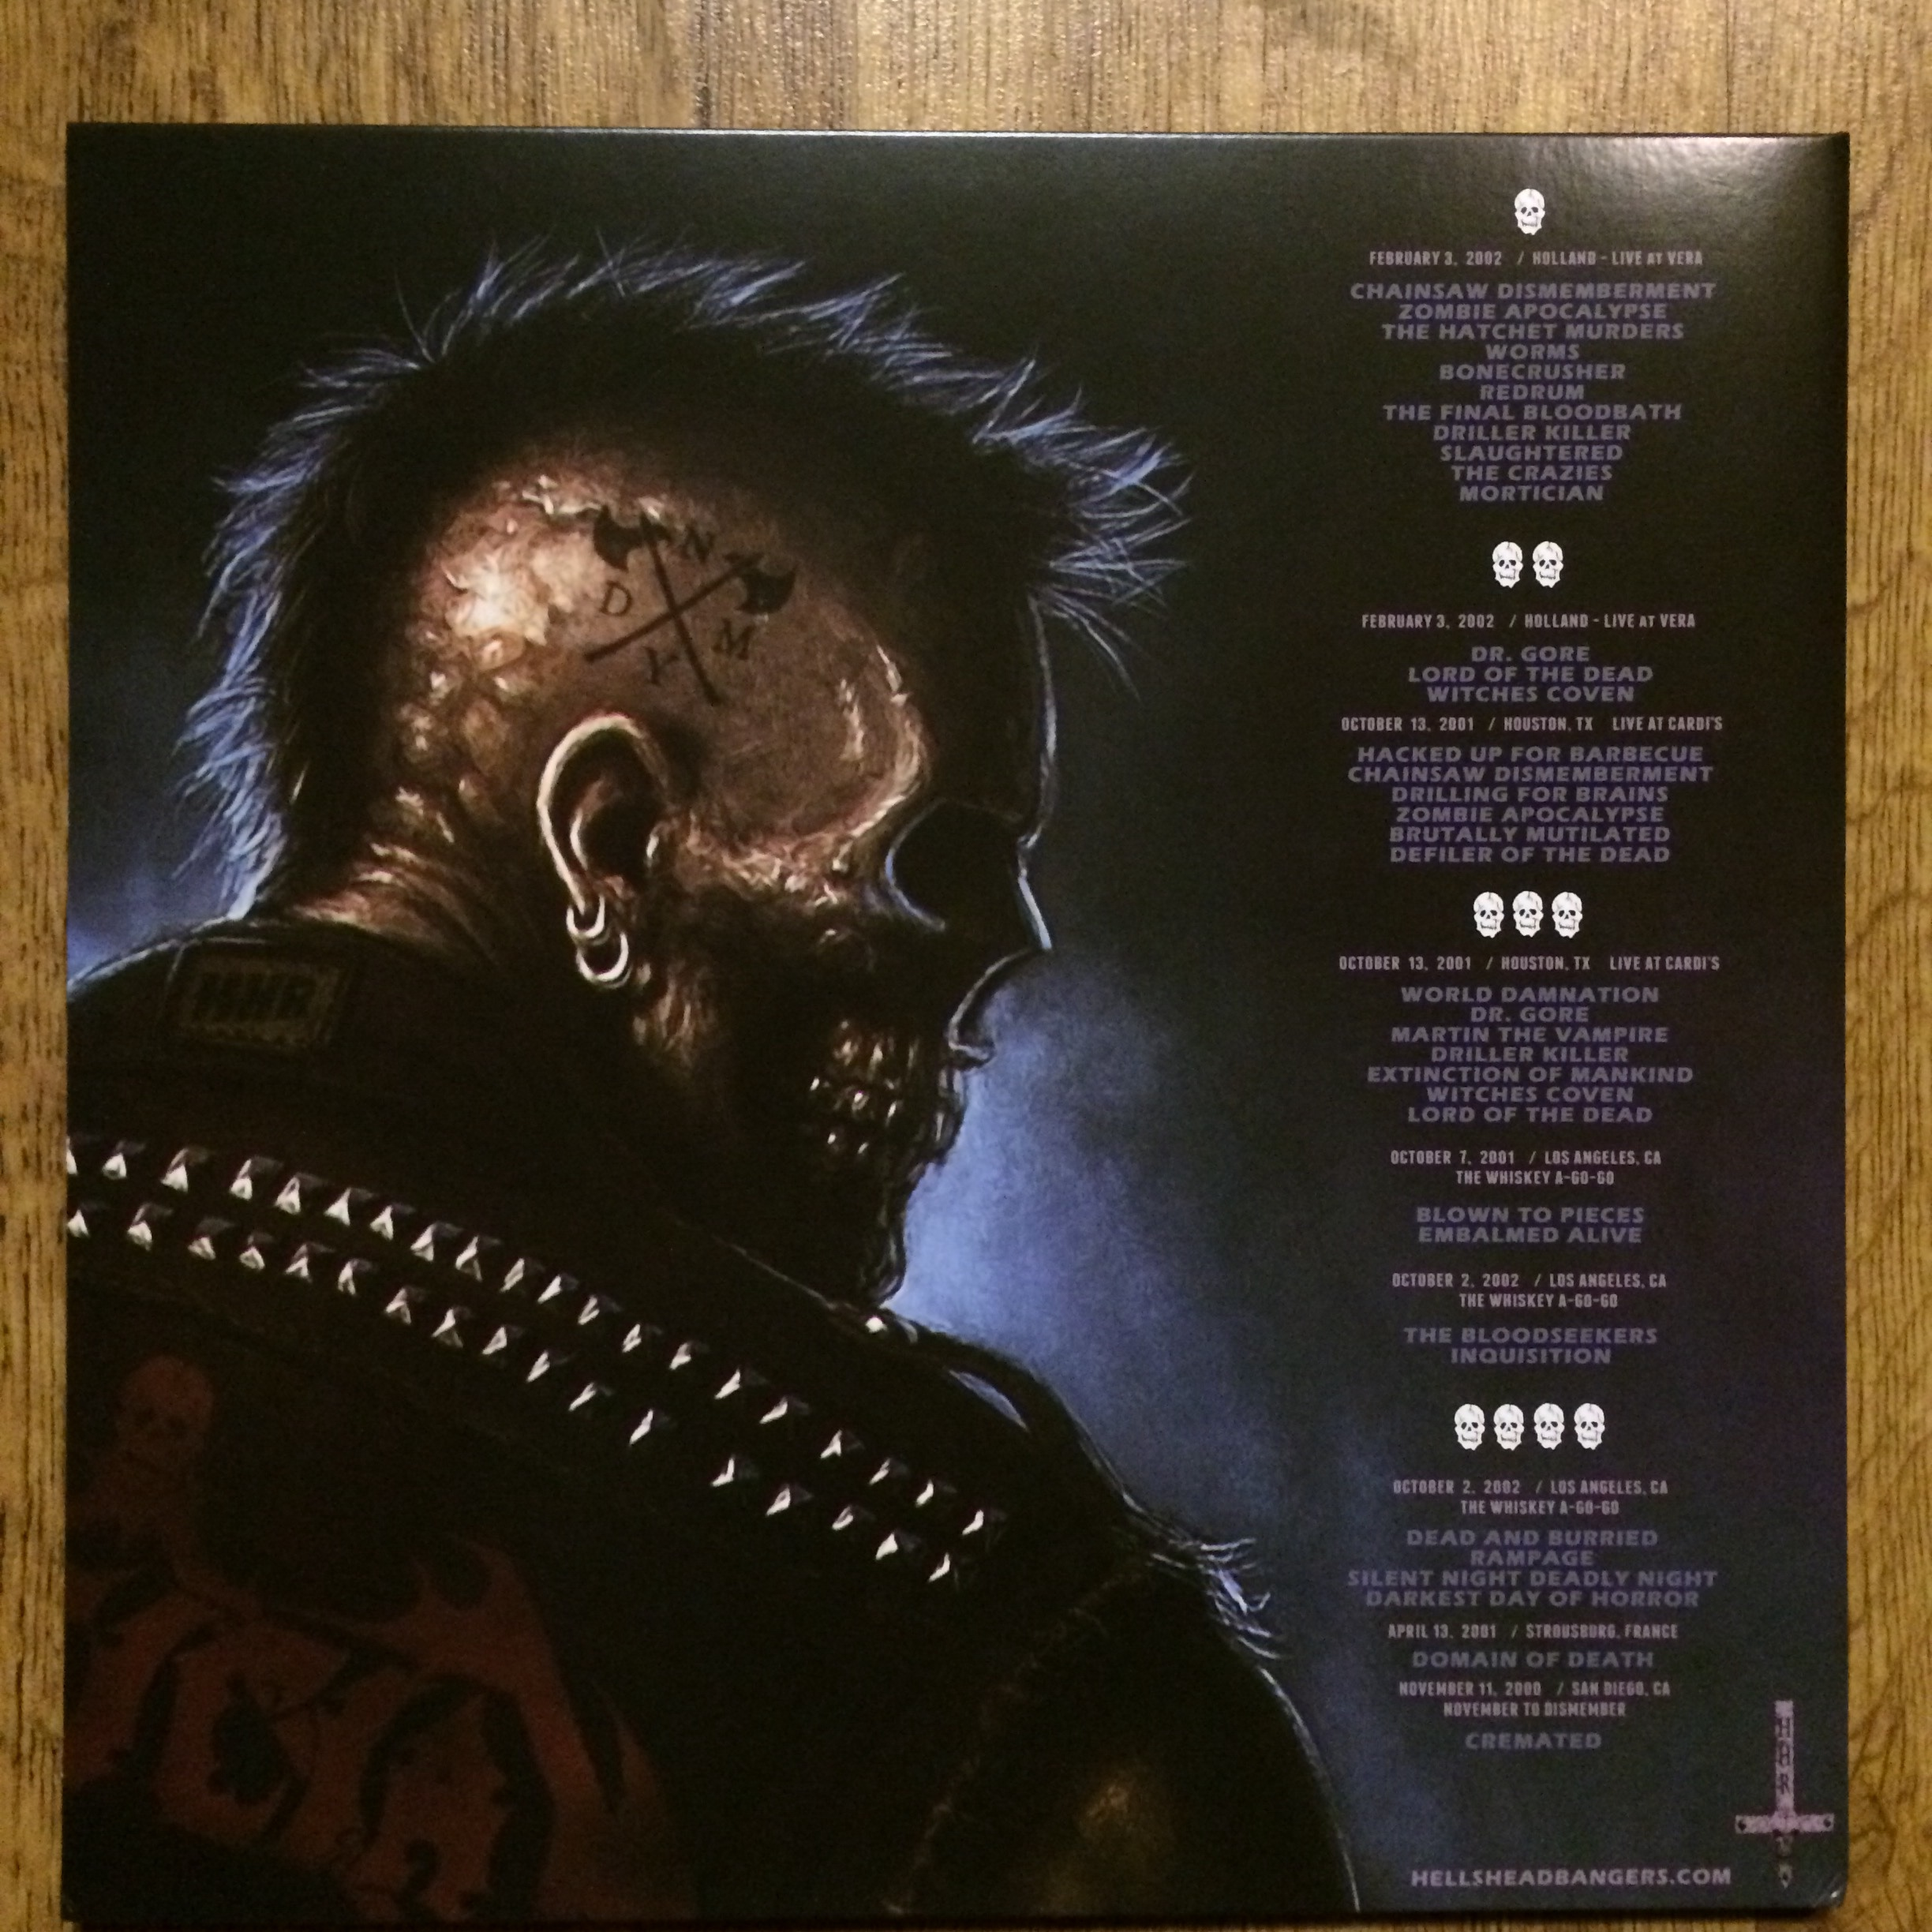 Mortician Zombie Massacre Live 2lp Black Vinyl Extremely Rotten Productions Online Store Powered By Storenvy